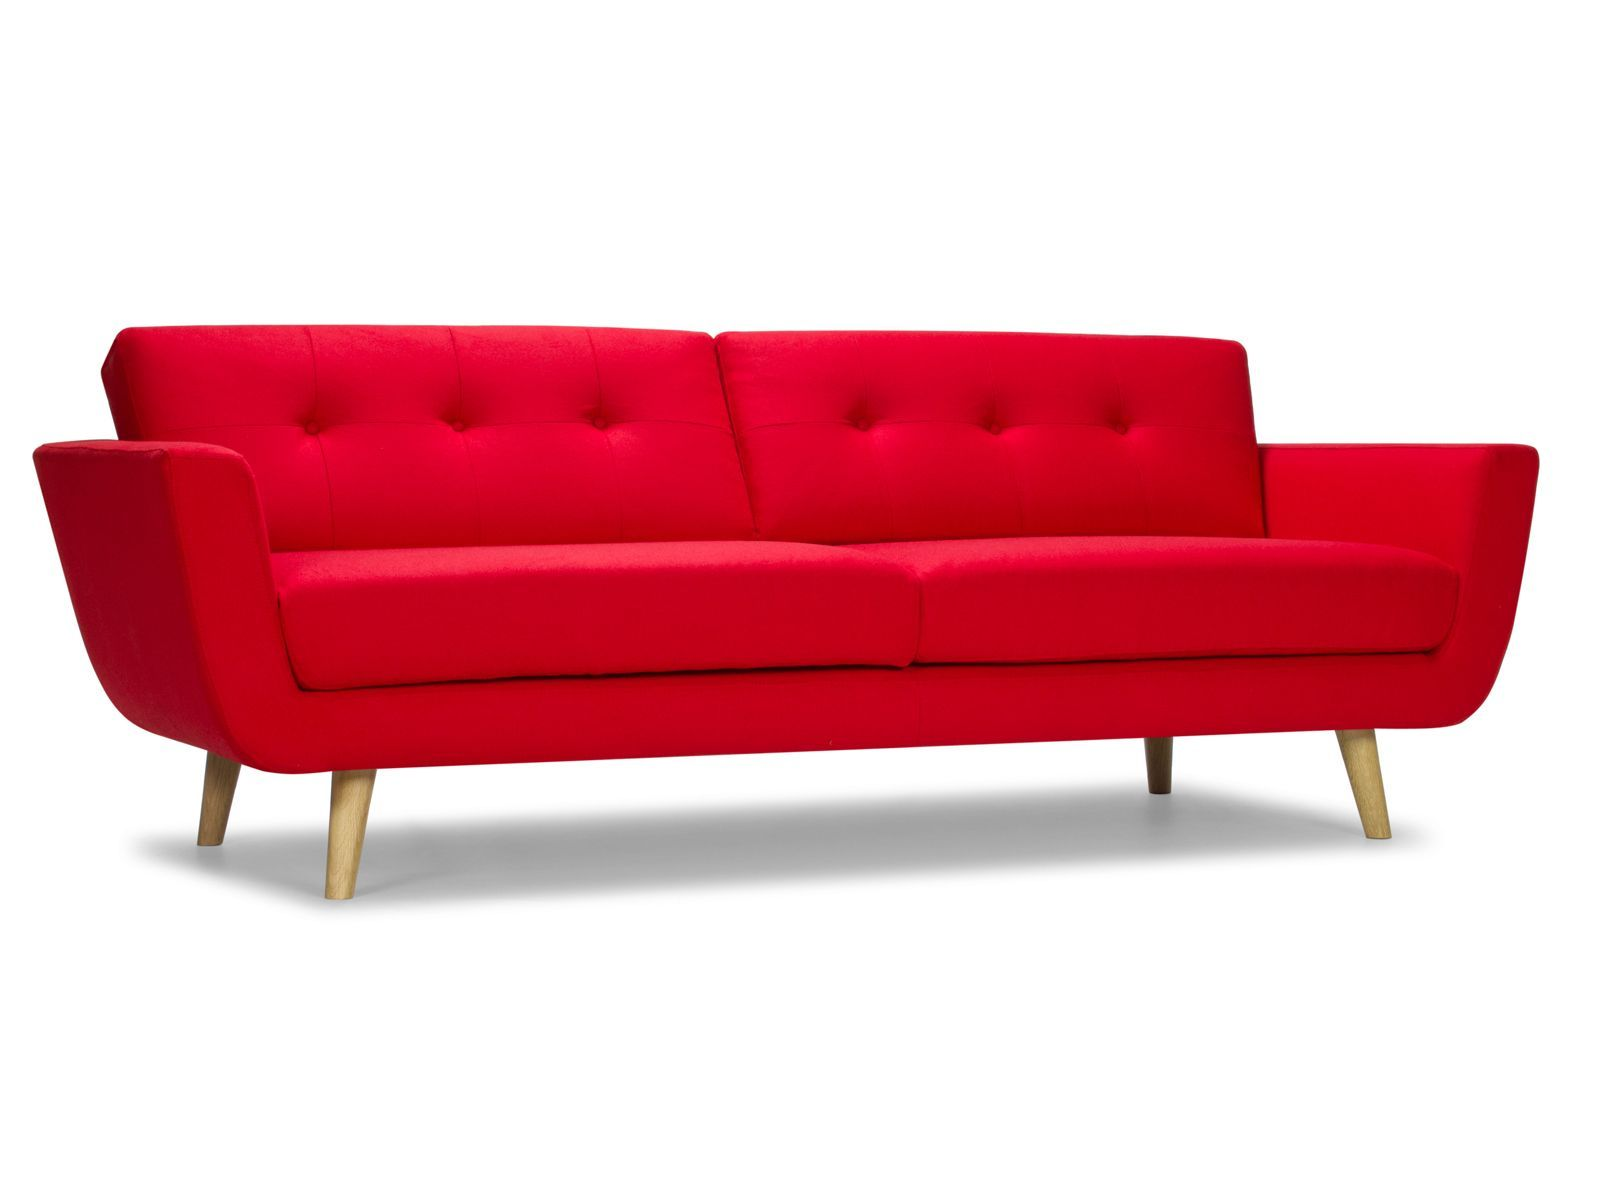 Living Room Furniture Belfast Belfast 3 Seater Retro Sofa Real Grown Up Furniture Pinterest